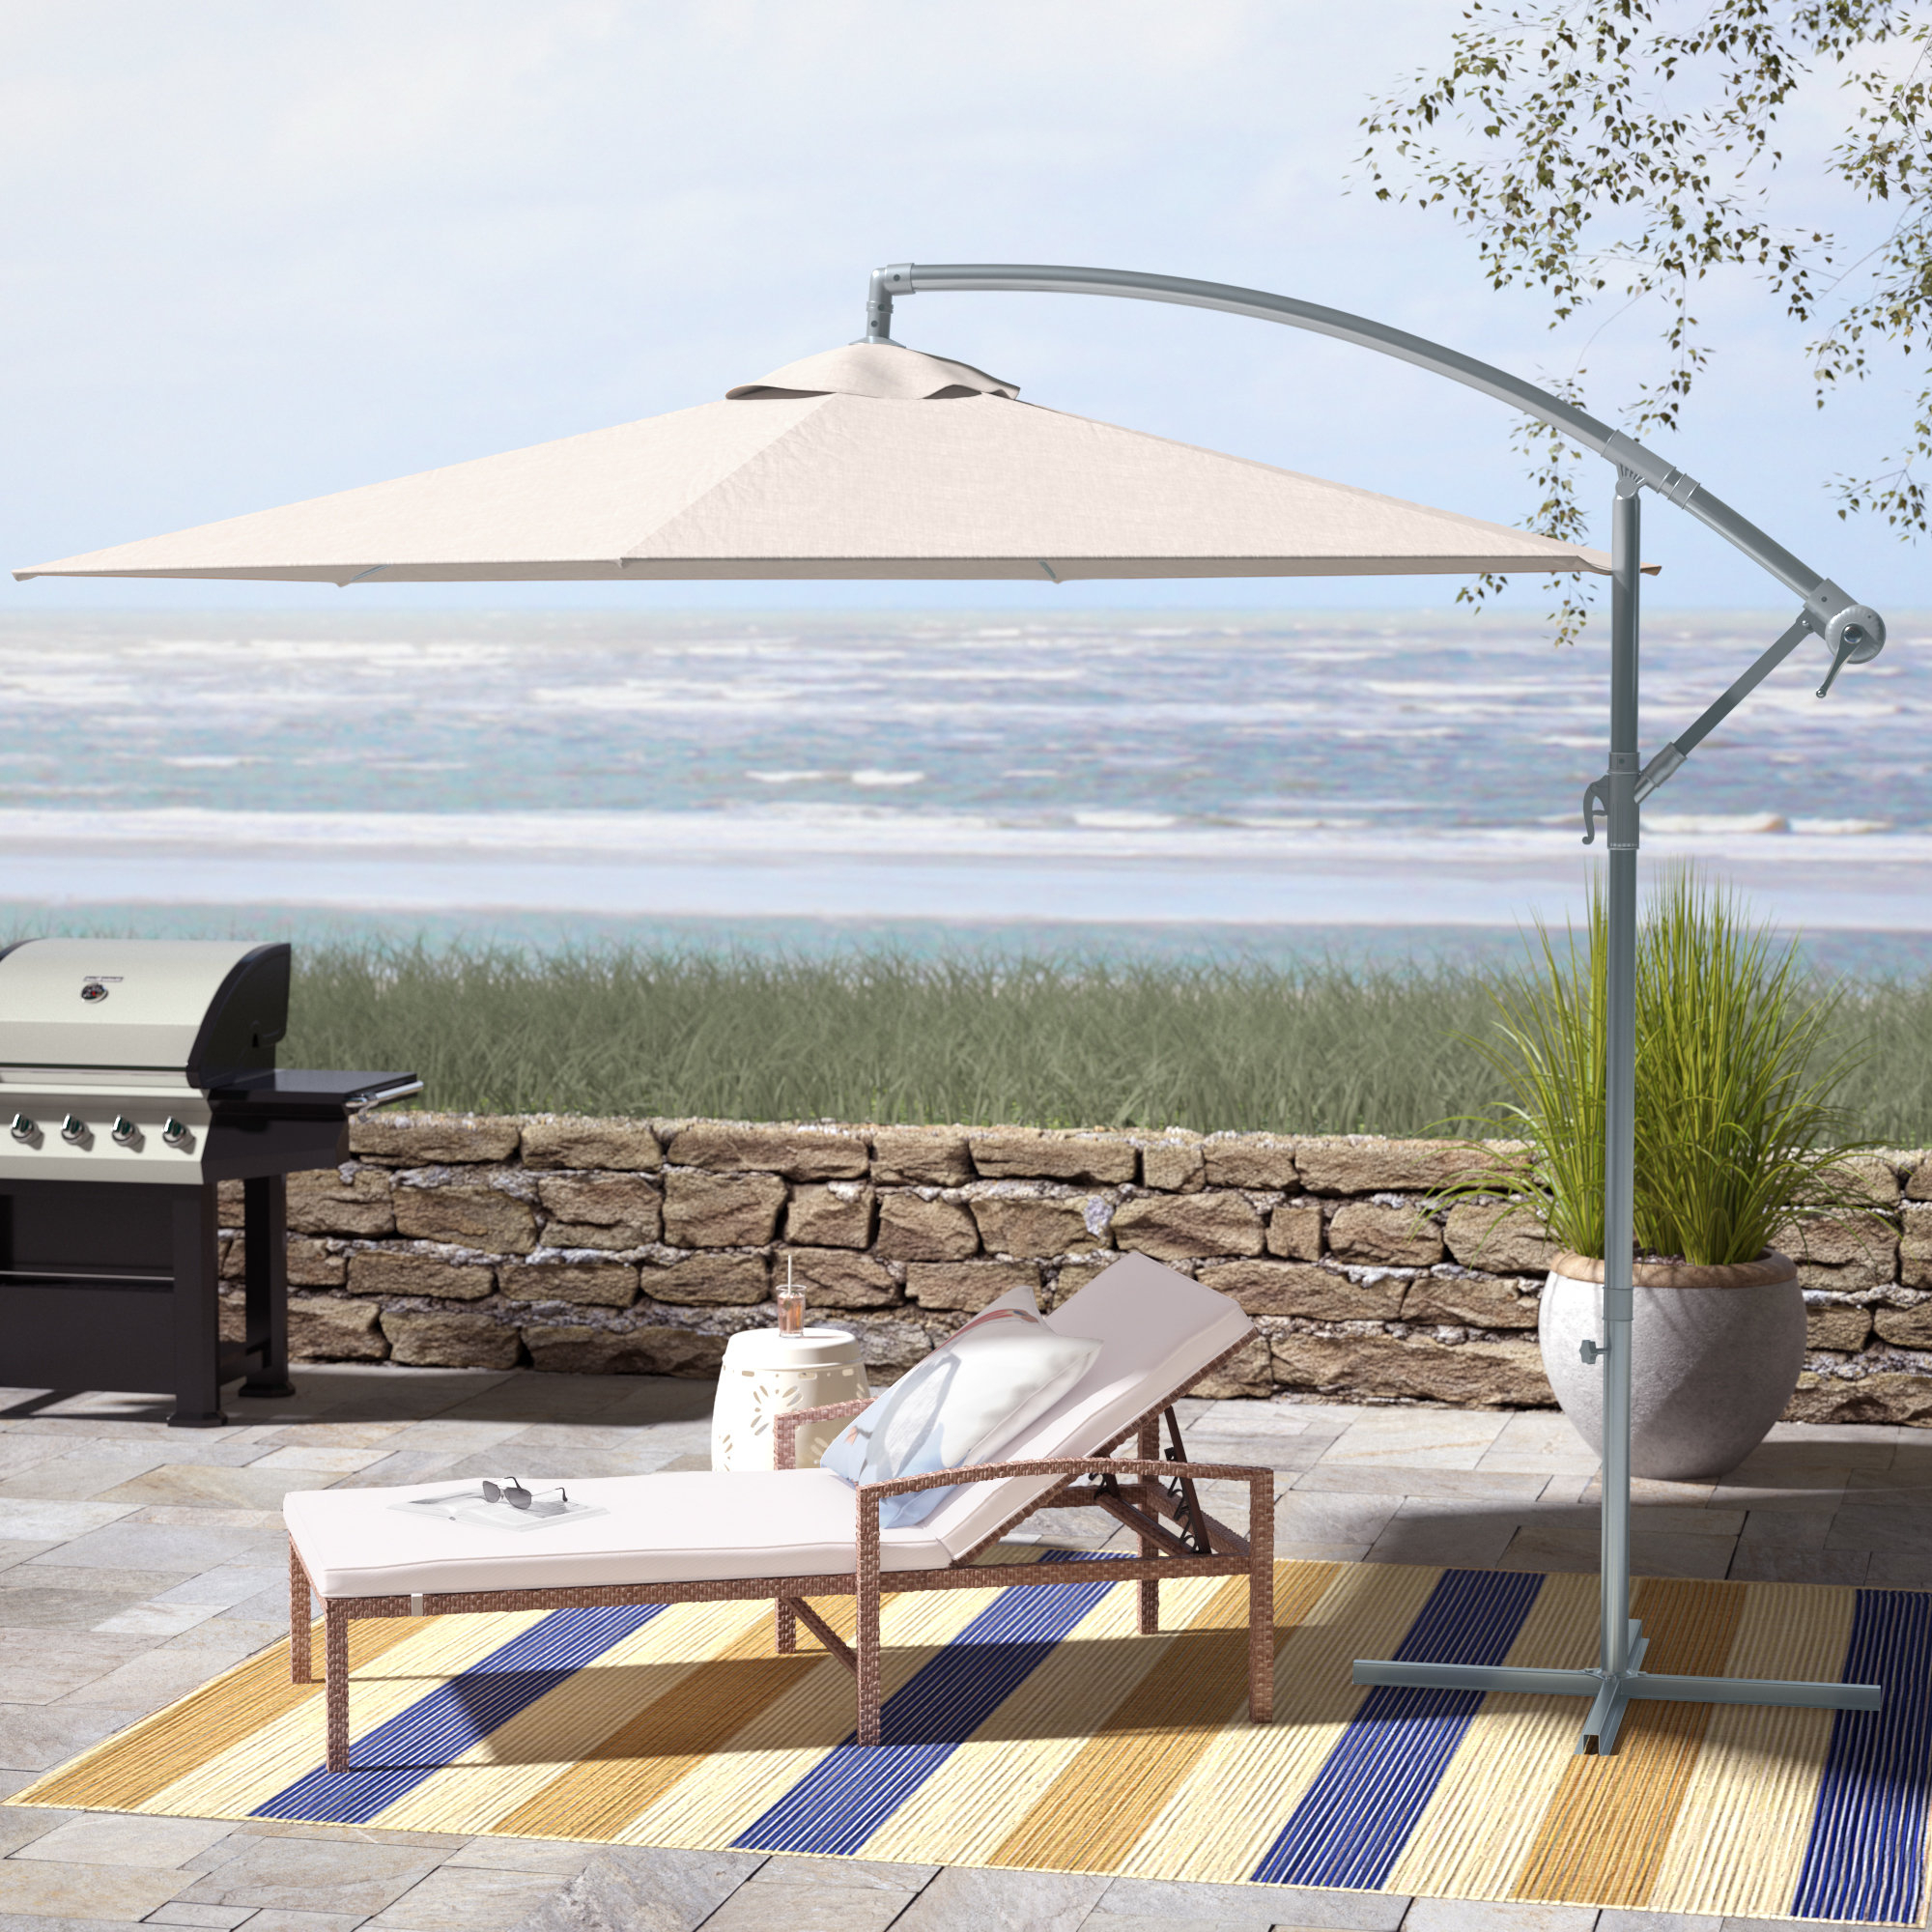 Muhammad Fullerton 10' Cantilever Umbrella Within 2020 Tallulah Sunshade Hanging Outdoor Cantilever Umbrellas (View 3 of 20)